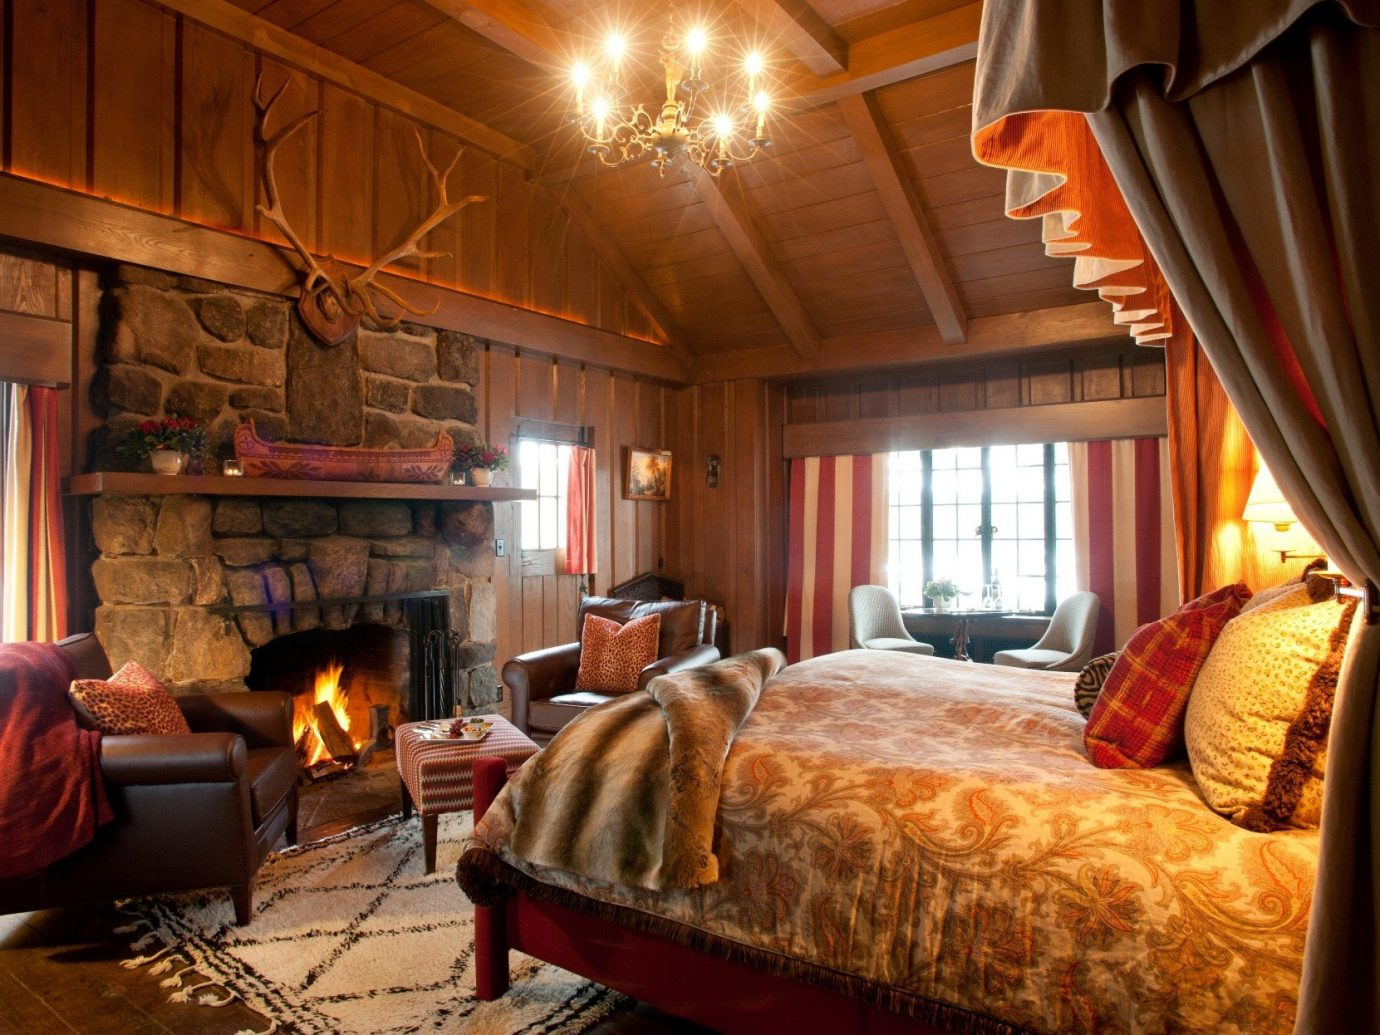 bed Bedroom Cabin cozy extravagant fire Fireplace interior Lodge log cabin Luxury Rustic Trip Ideas warm indoor room ceiling property Living building estate cottage home interior design living room Suite real estate farmhouse Villa furniture